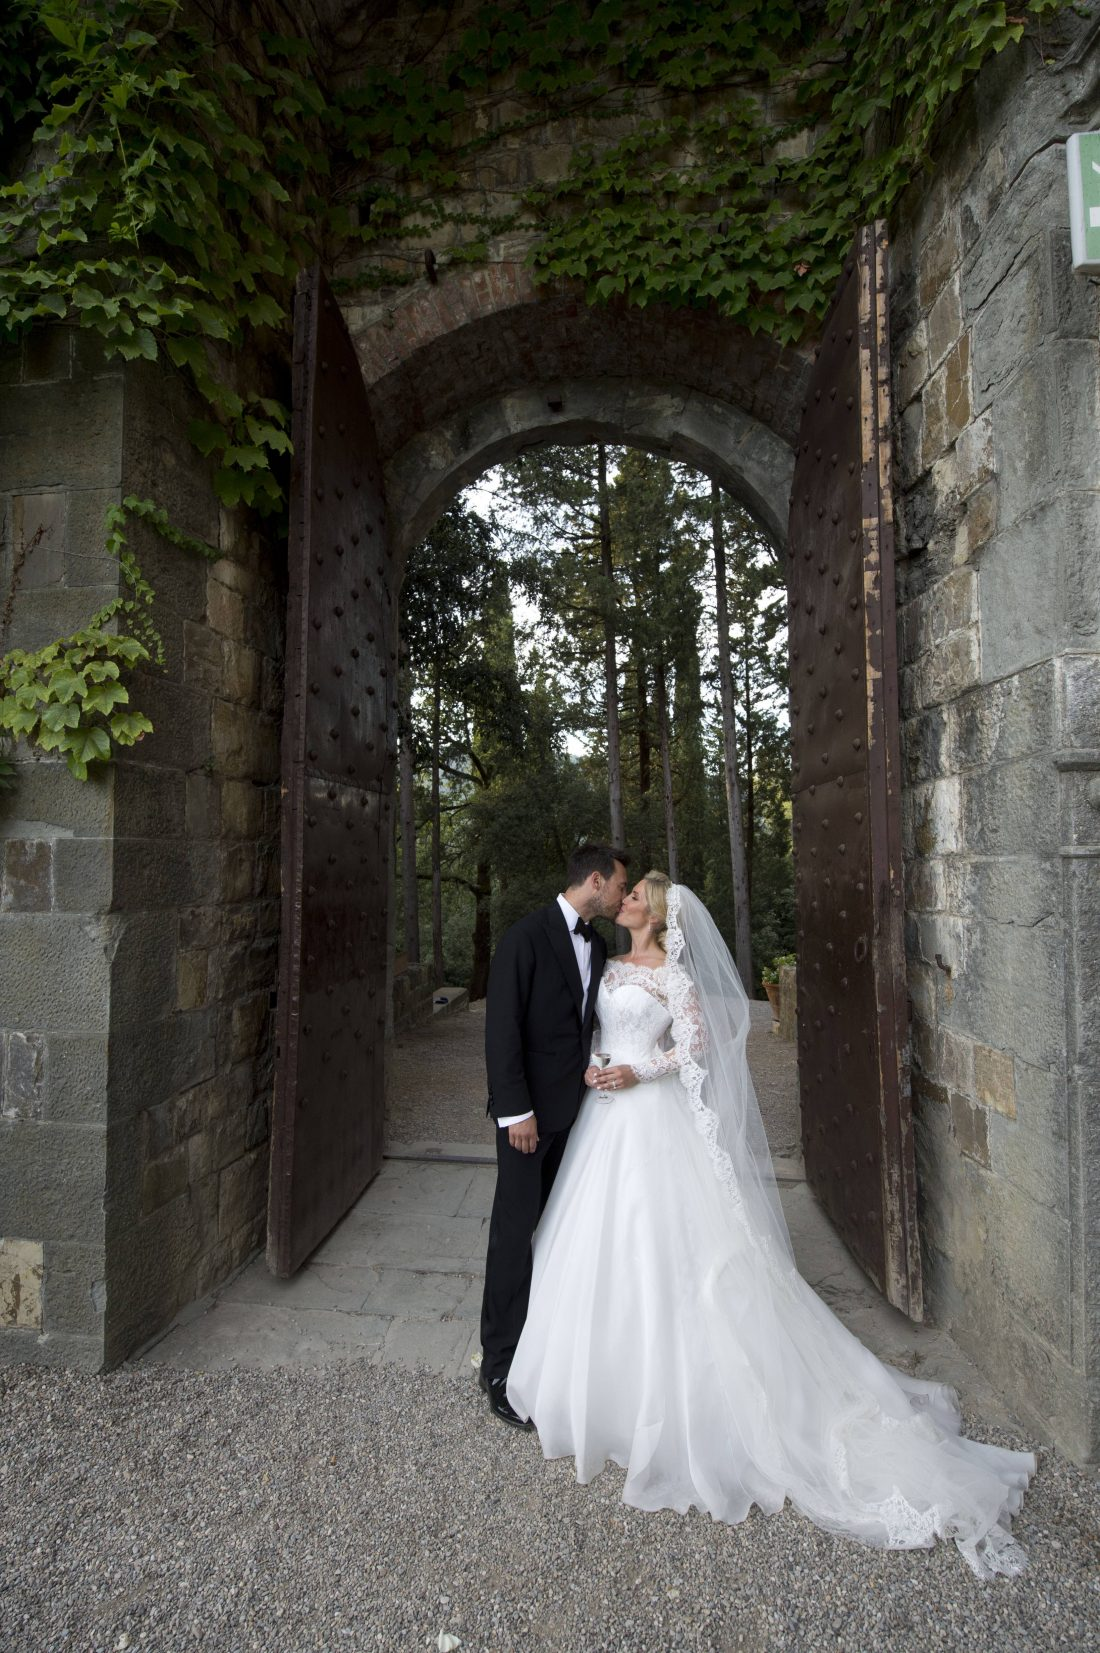 Celebrity Wedding Dresses Ireland : Heidi range s beautiful florence wedding quot the day my dreams came true